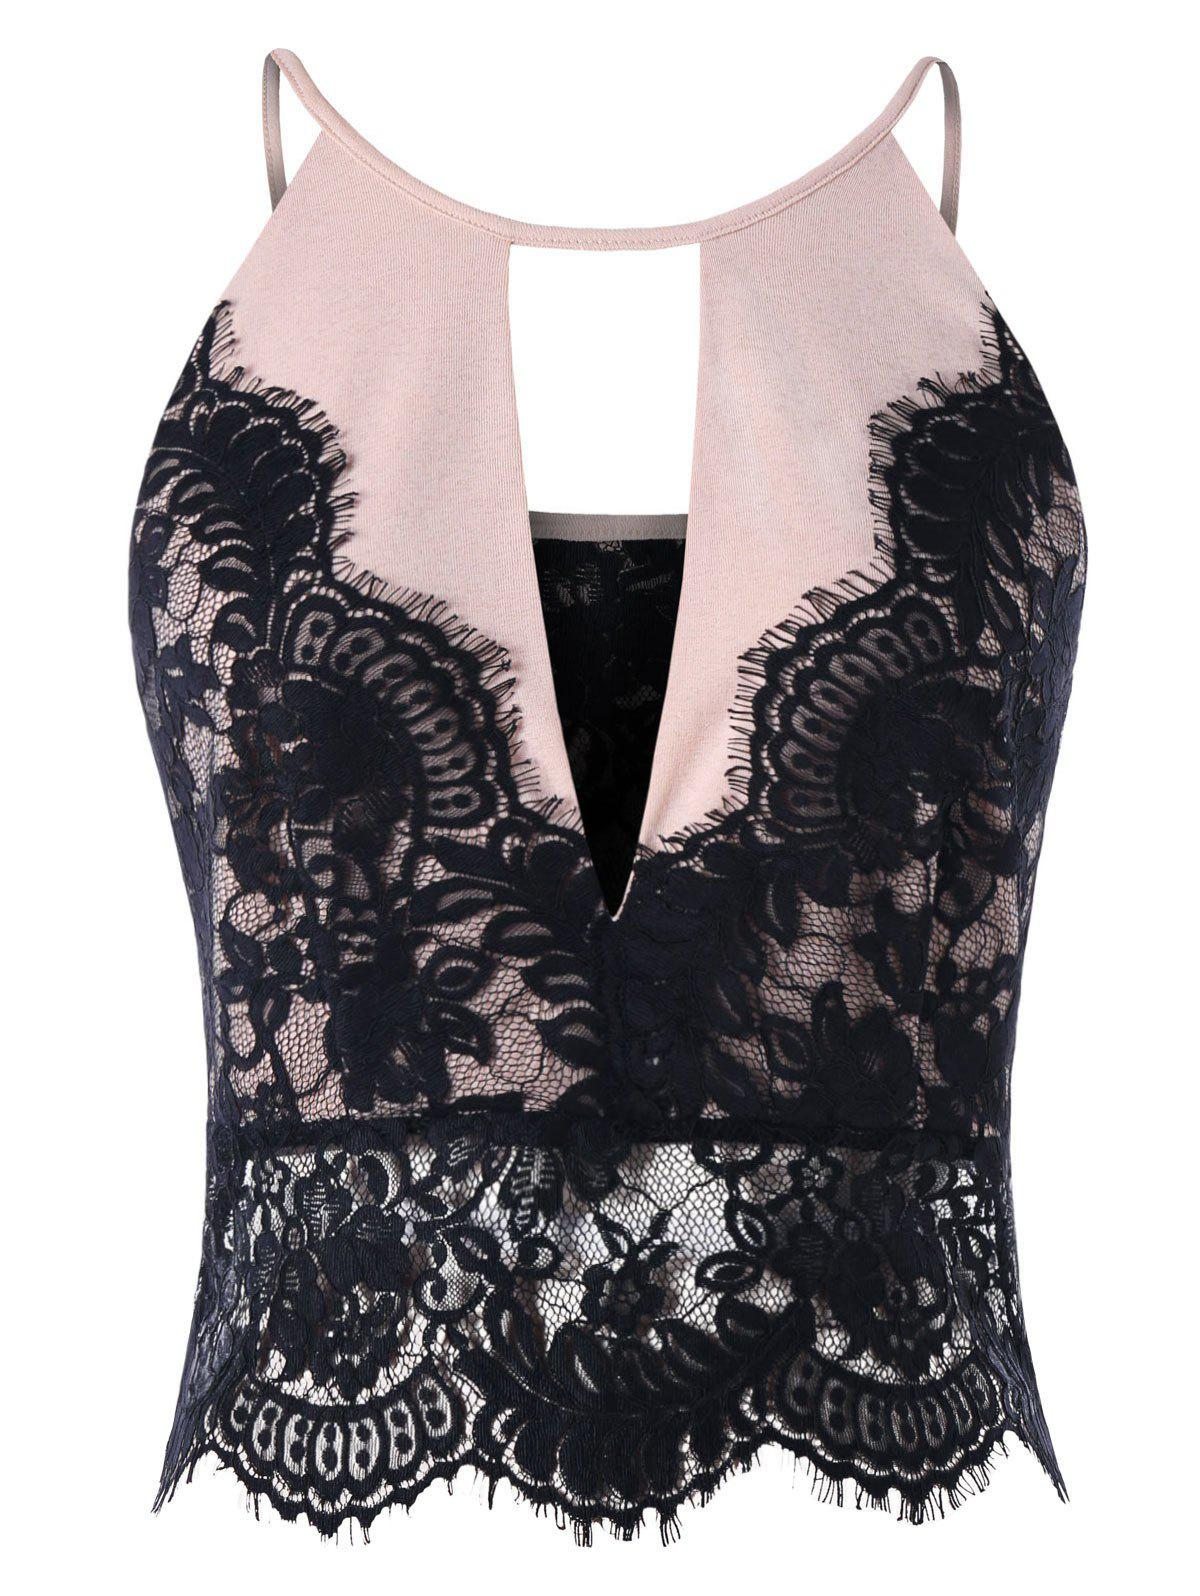 Trendy Lace Eyelash Panel Scalloped Edge Camisole